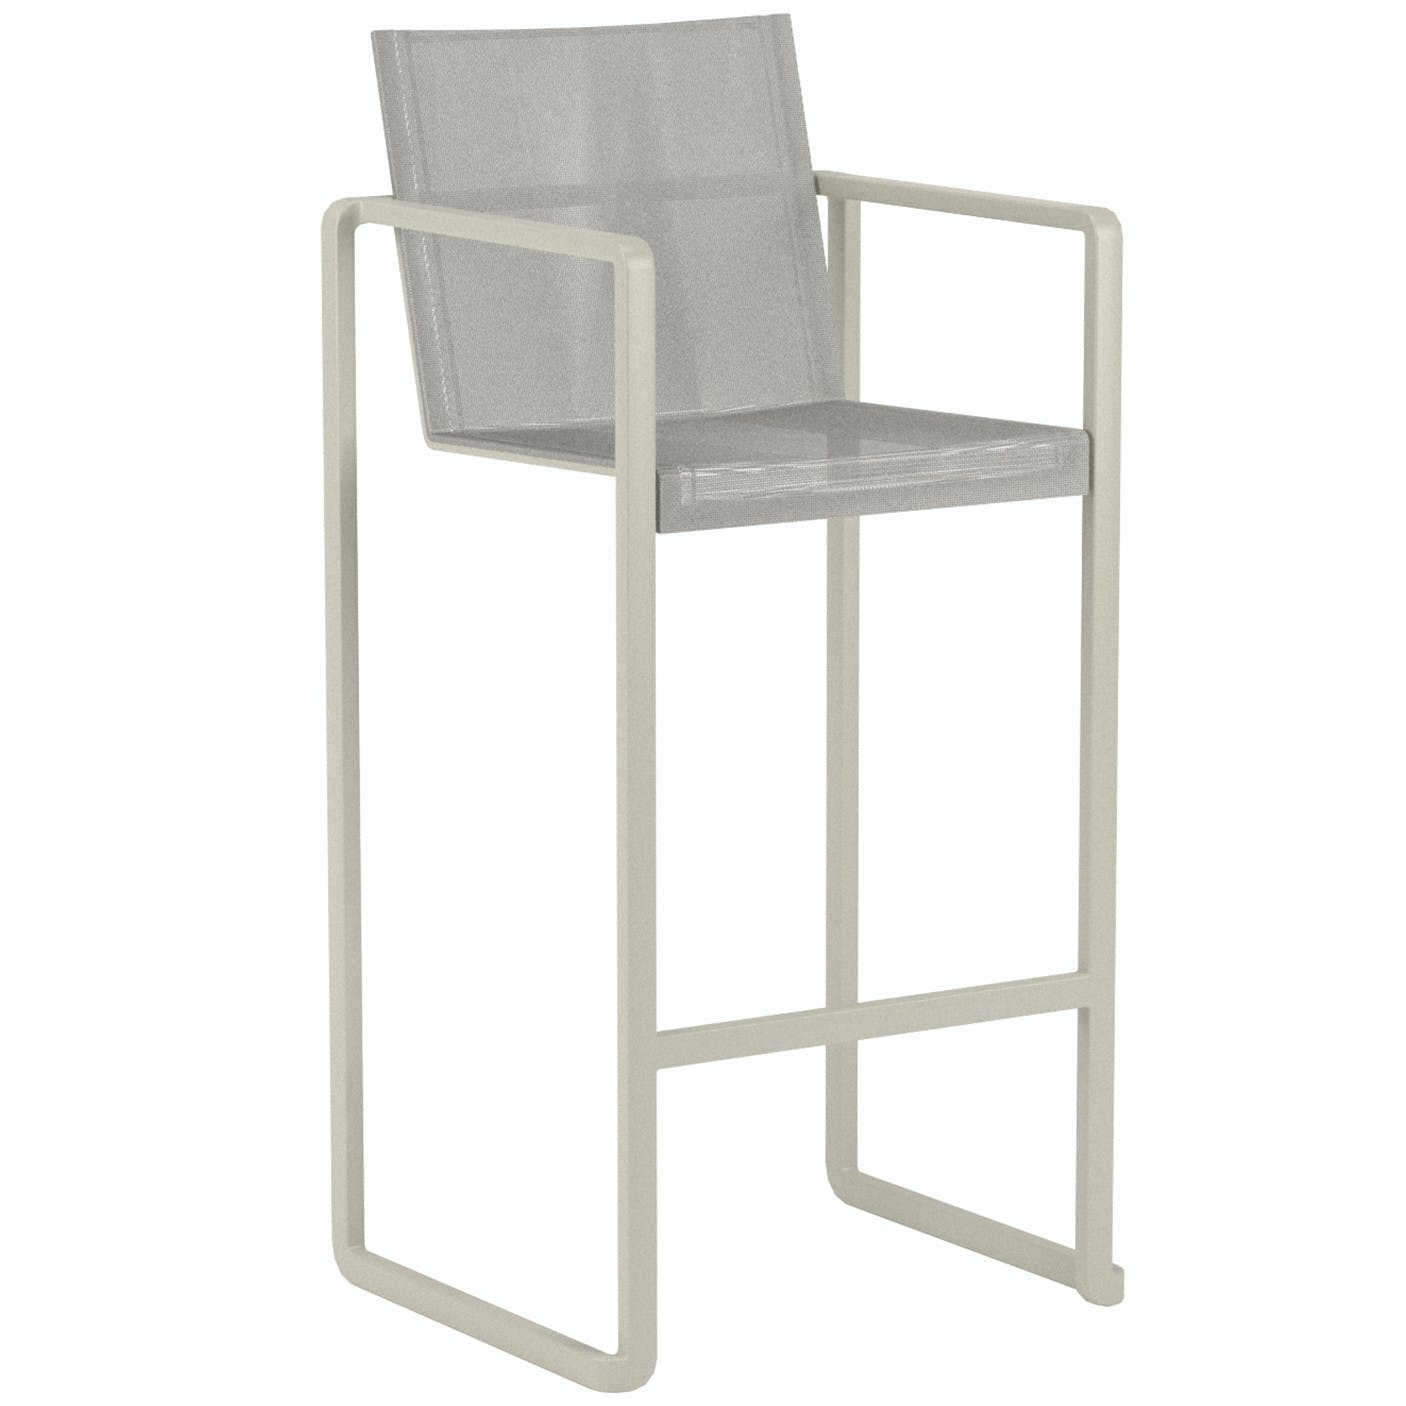 Royal Botania Alura Bar Stool Gray Haute Living